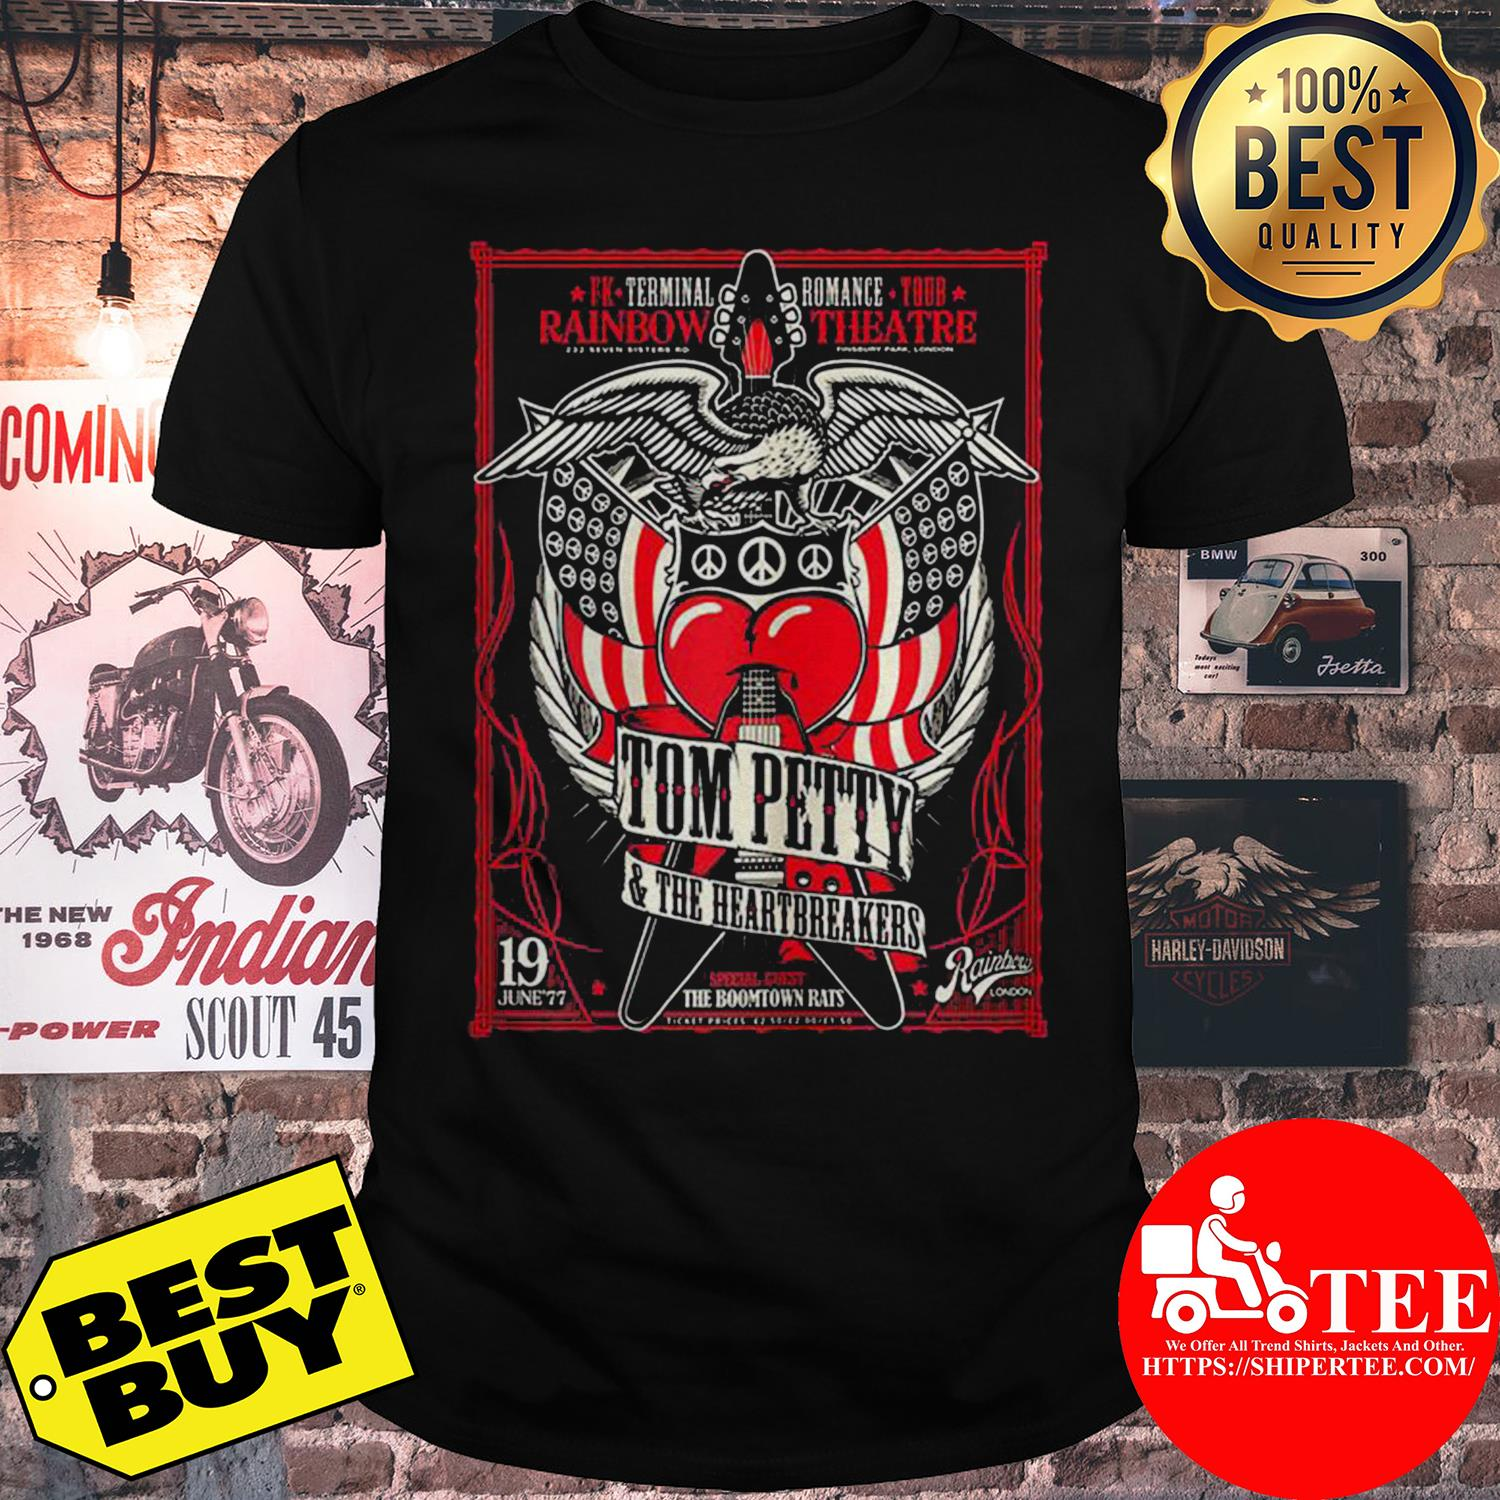 Rainbow theater Tom Petty and the Heartbreakers shirt